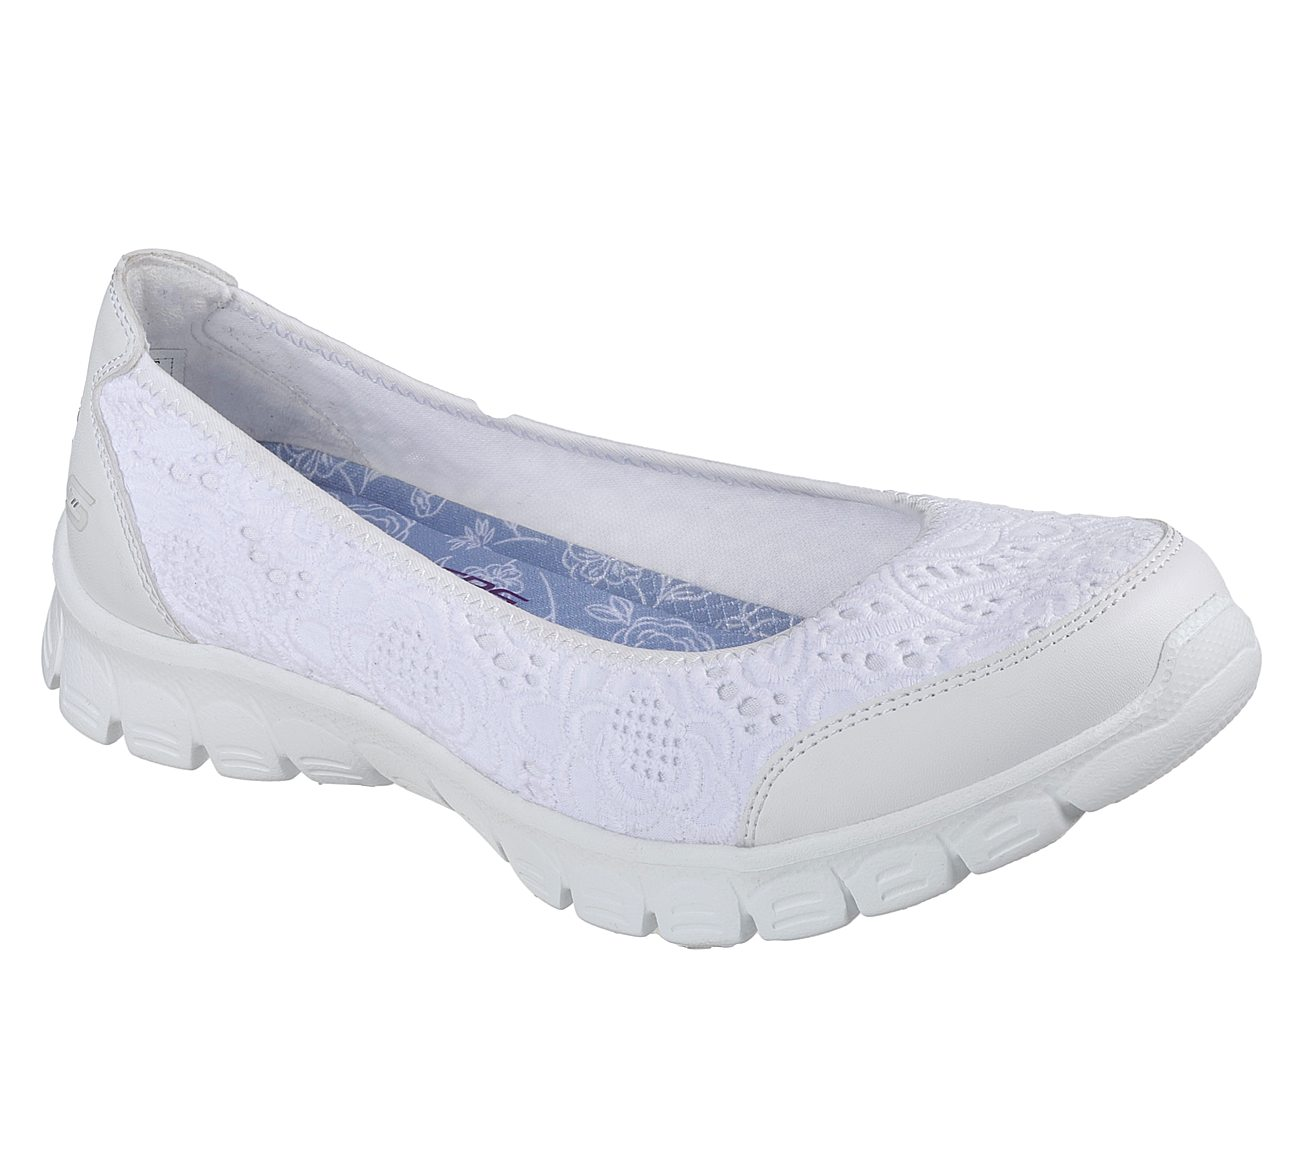 Skechers Sport Women's EZ Flex 3.0-Be You Sneaker